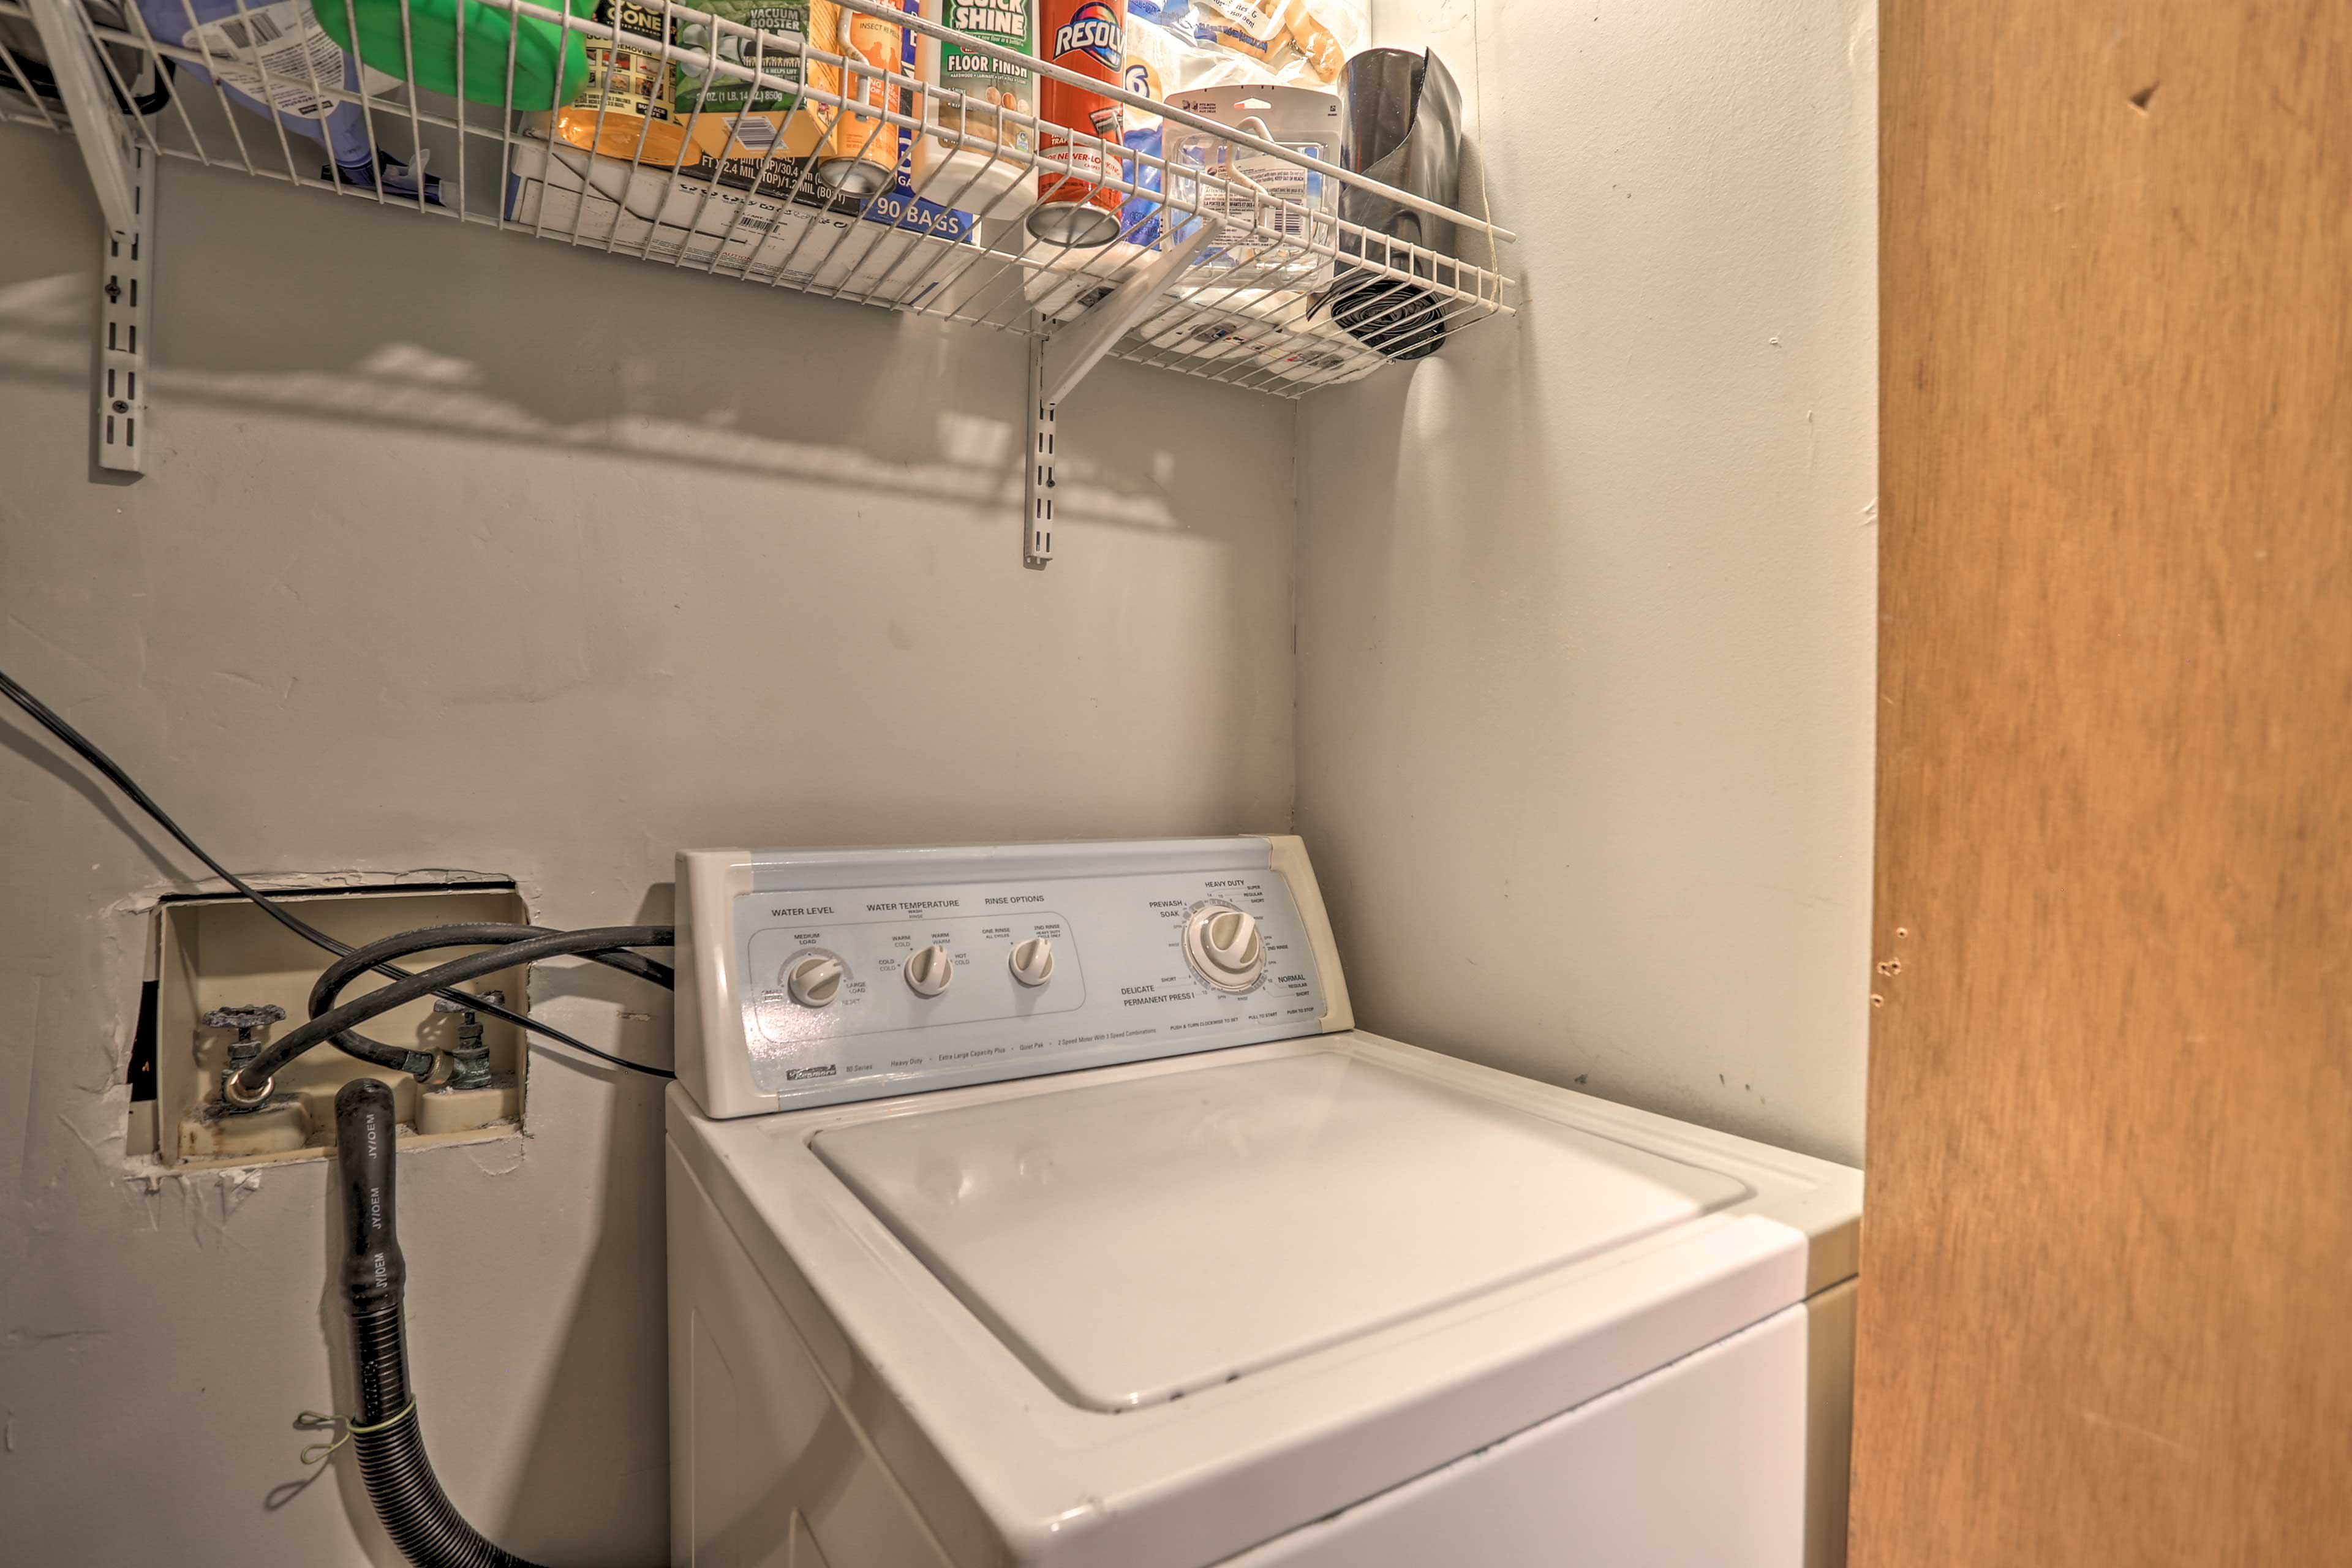 Keep everyone's lake gear clean in the washer/dryer.